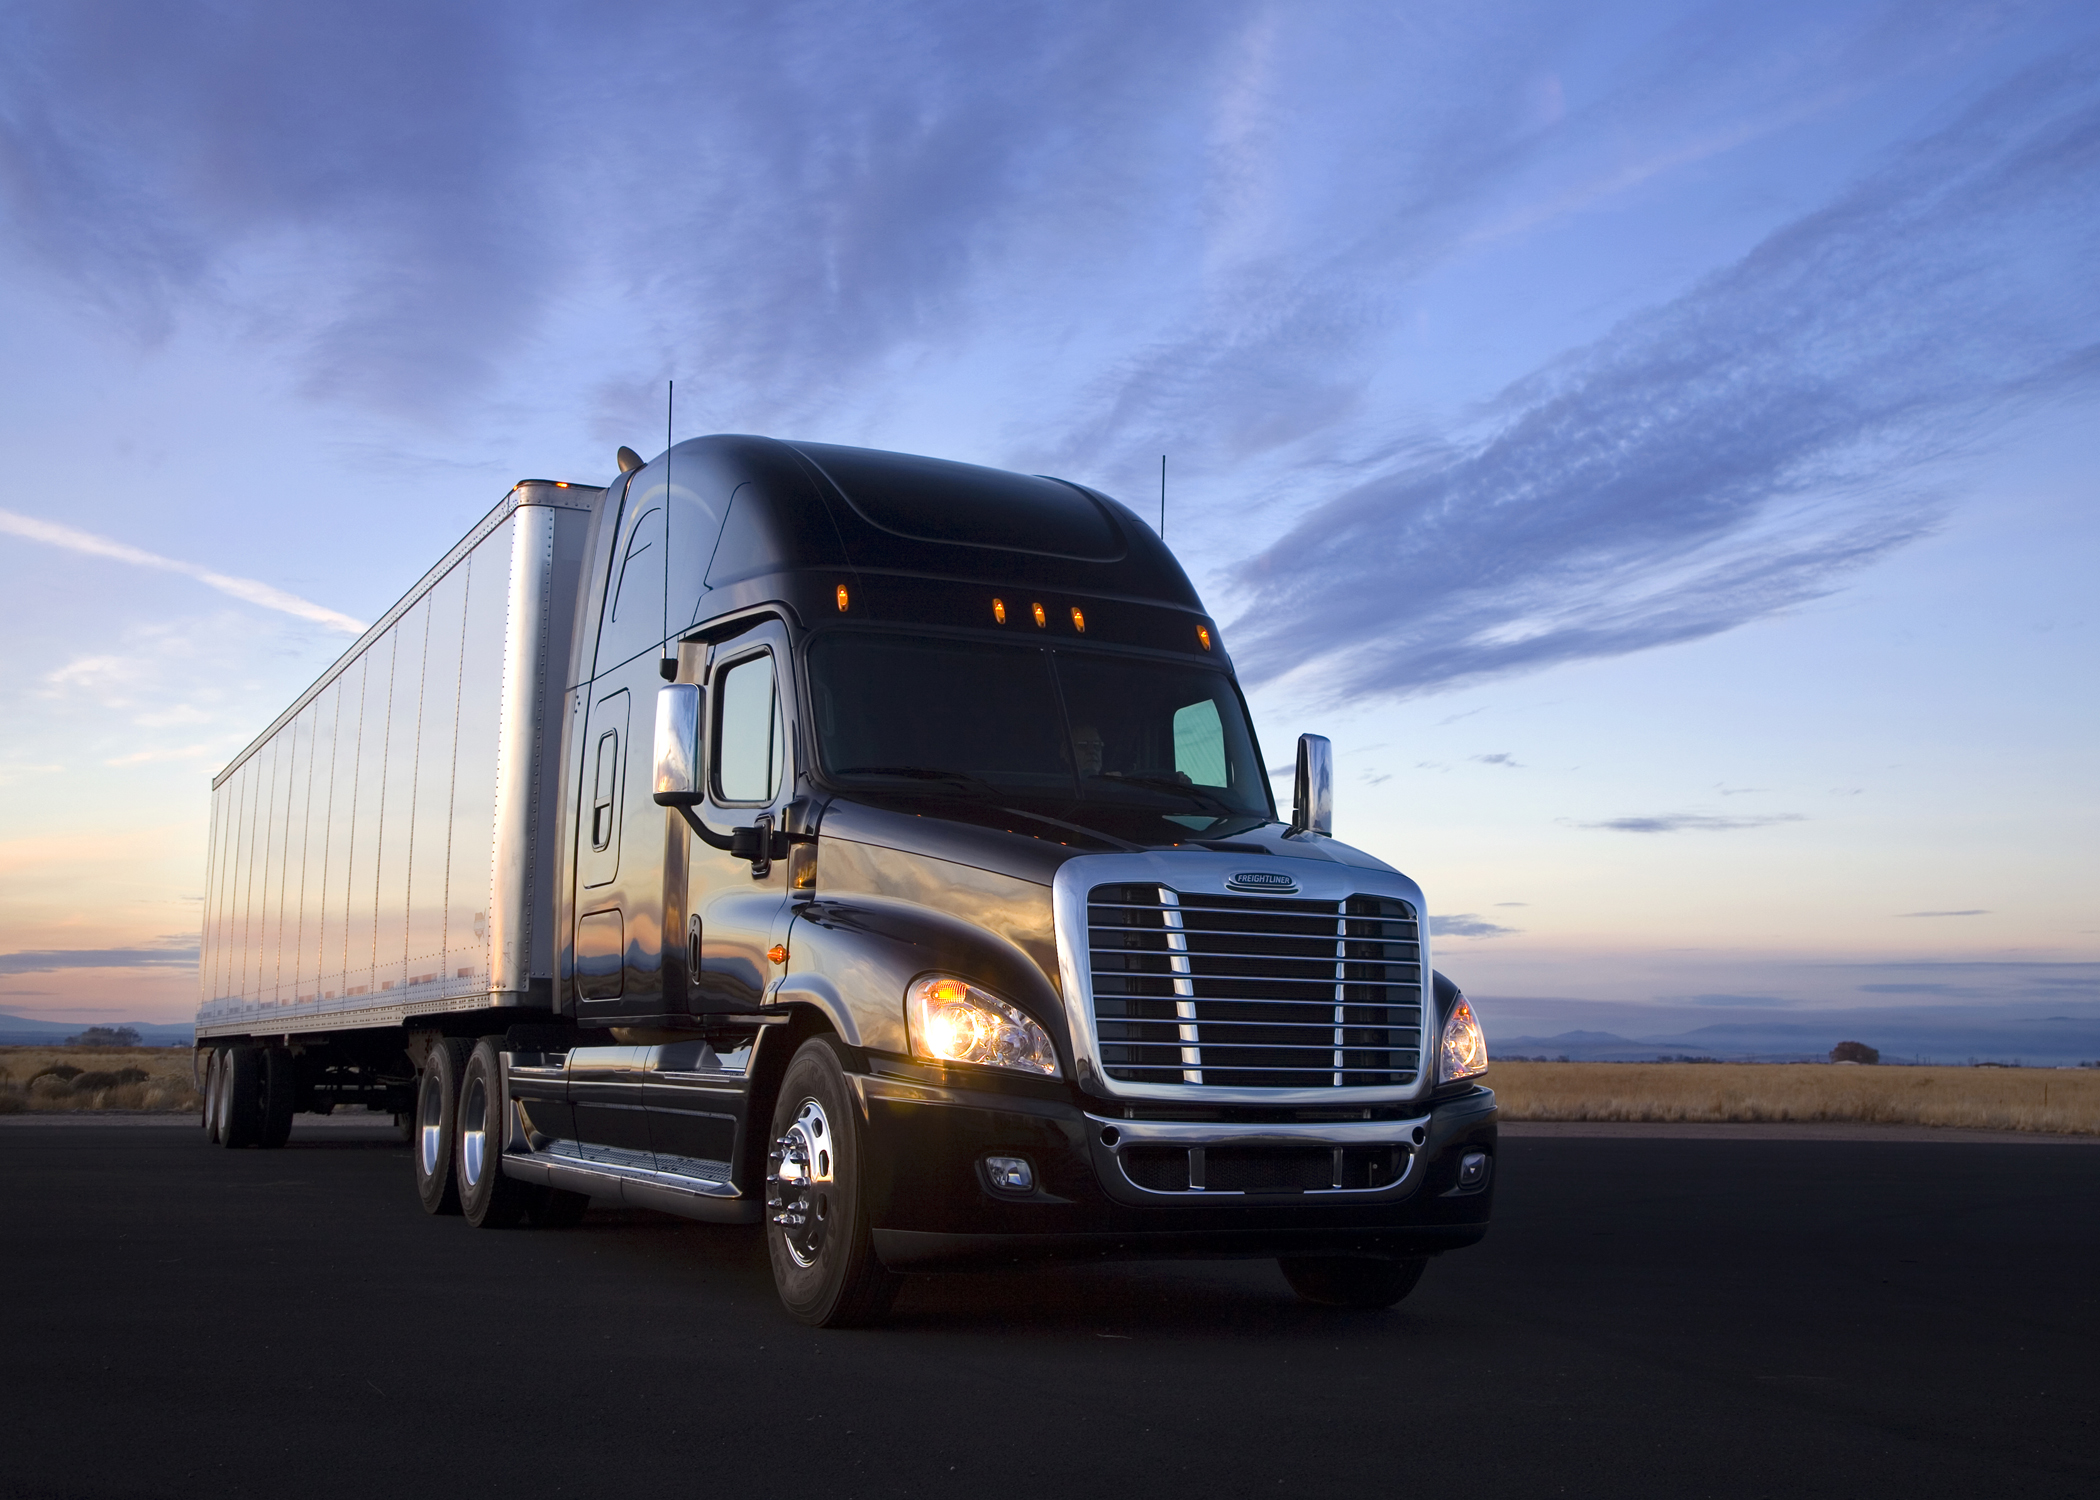 The Truck Market in 2020: What Does the Future Hold?